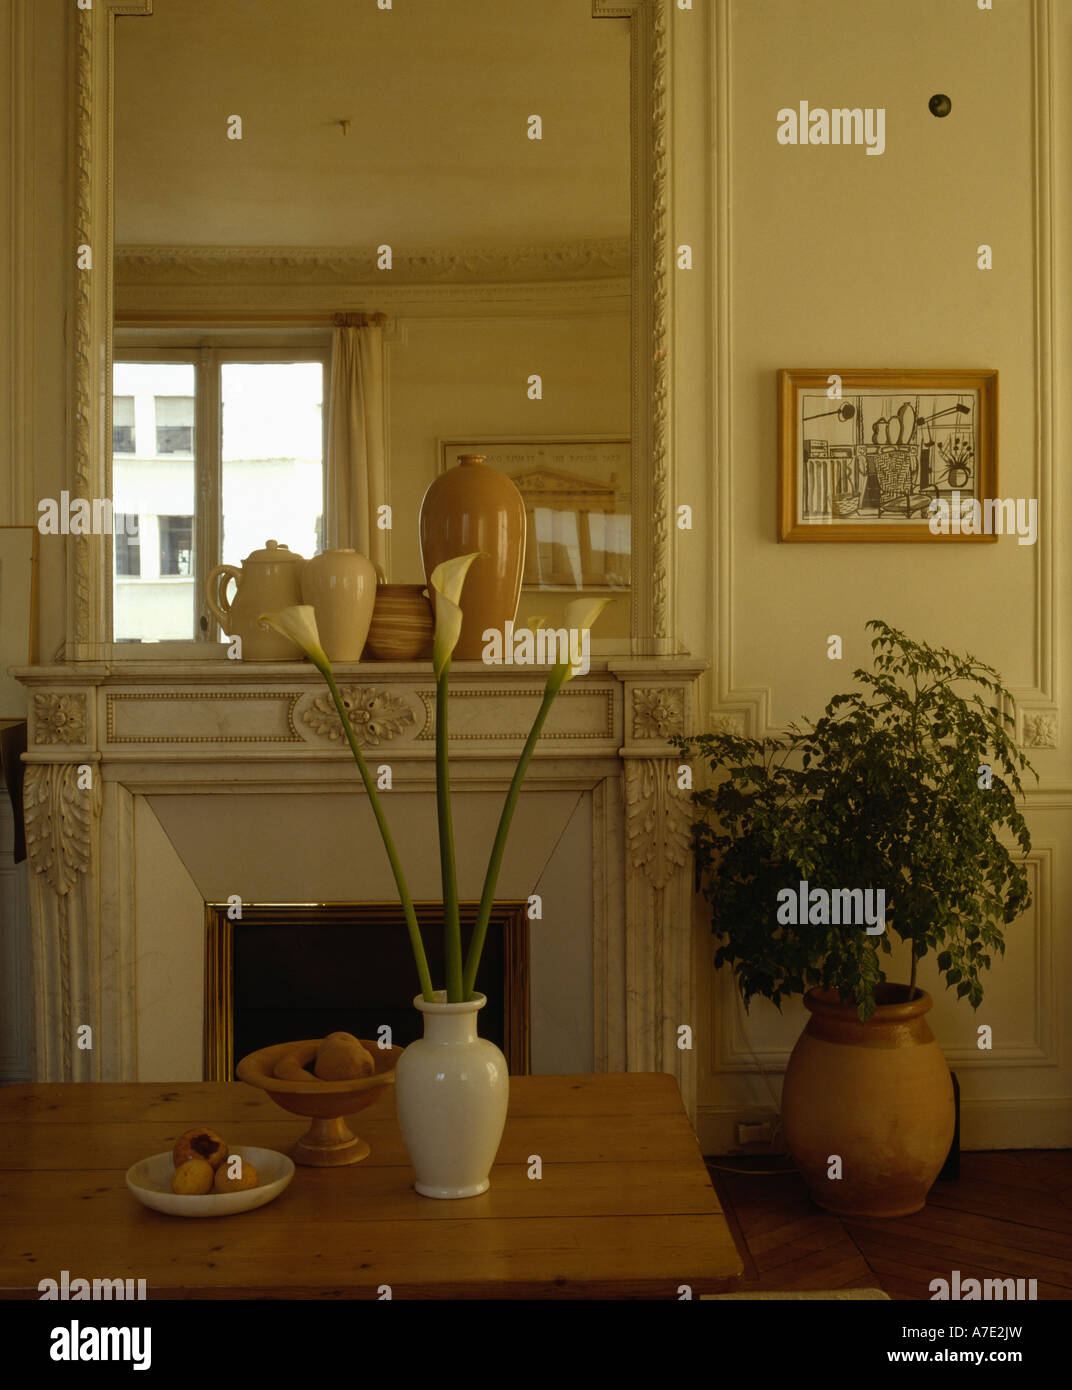 White Lilies In Vase On Table Front Of Fireplace Below Large Mirror Traditional Sittingroom